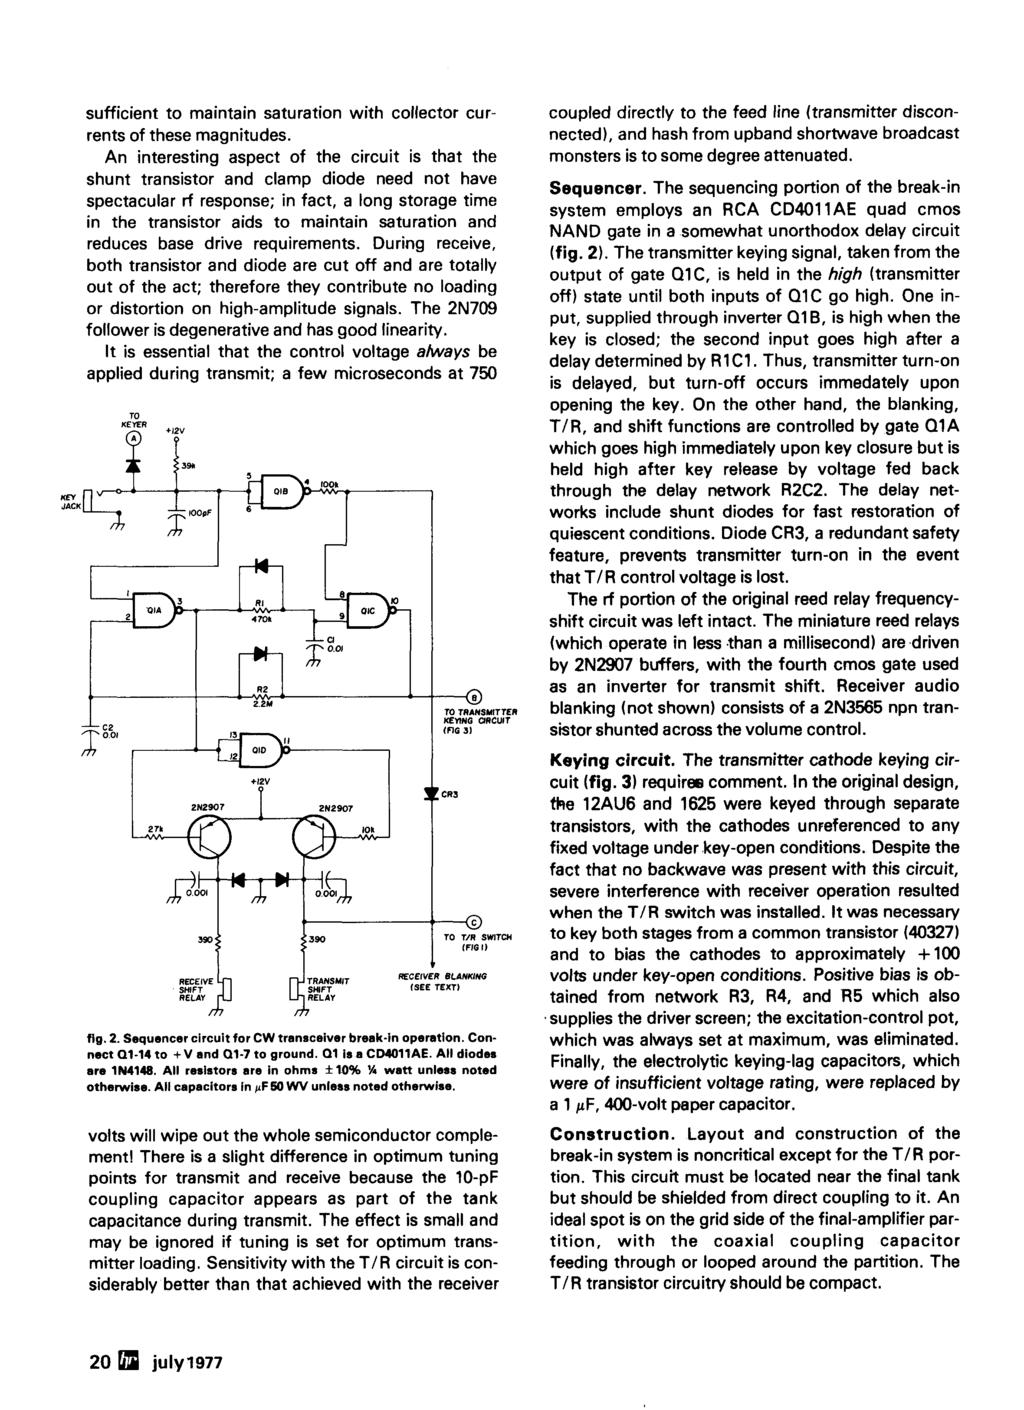 Ham Radjo Magazine July Cw Transceiver Transverter Spectrum Analyzer 570 571 Compandor Ic Compressor Circuit Sufficient To Maintain Saturation With Collector Currents Of These Magnitudes